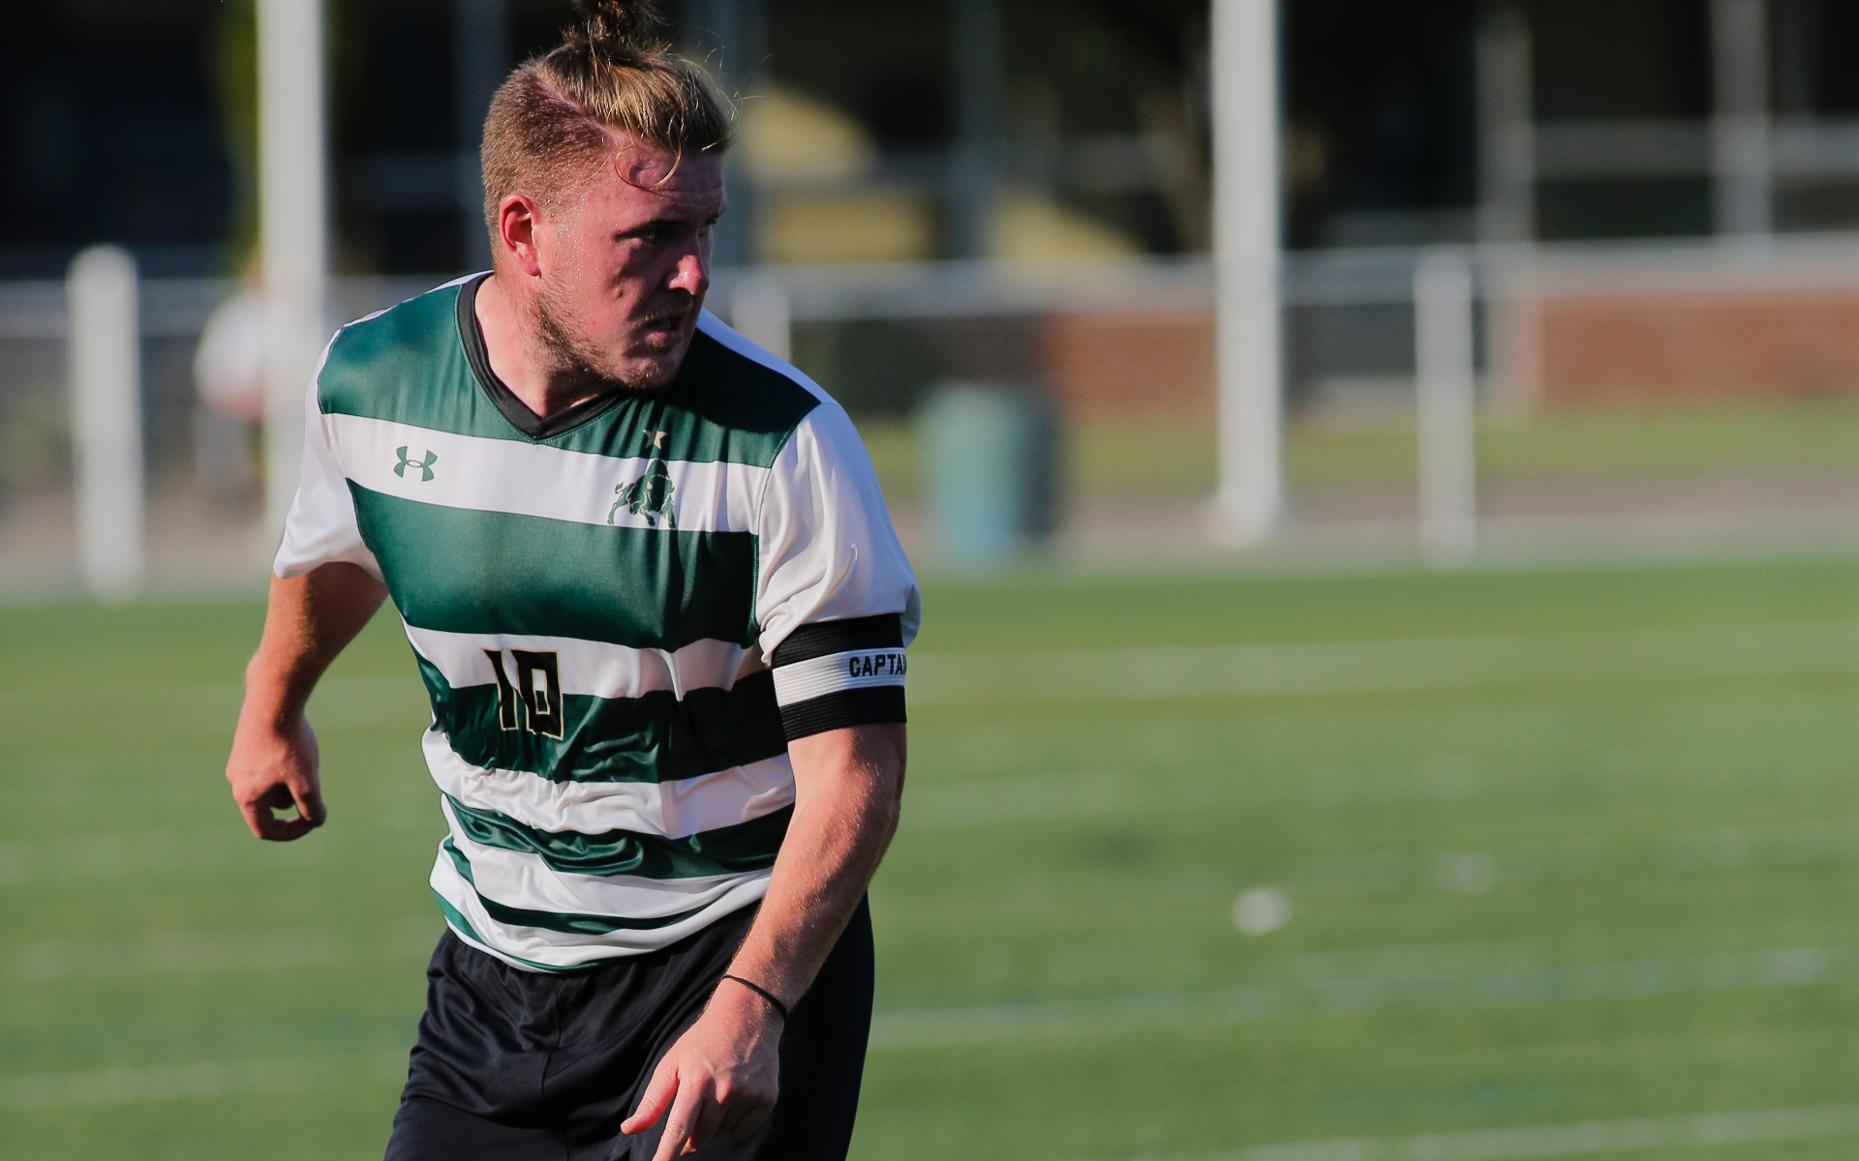 Bethany Men's Soccer Cruises to 6-2 Victory Over UPG